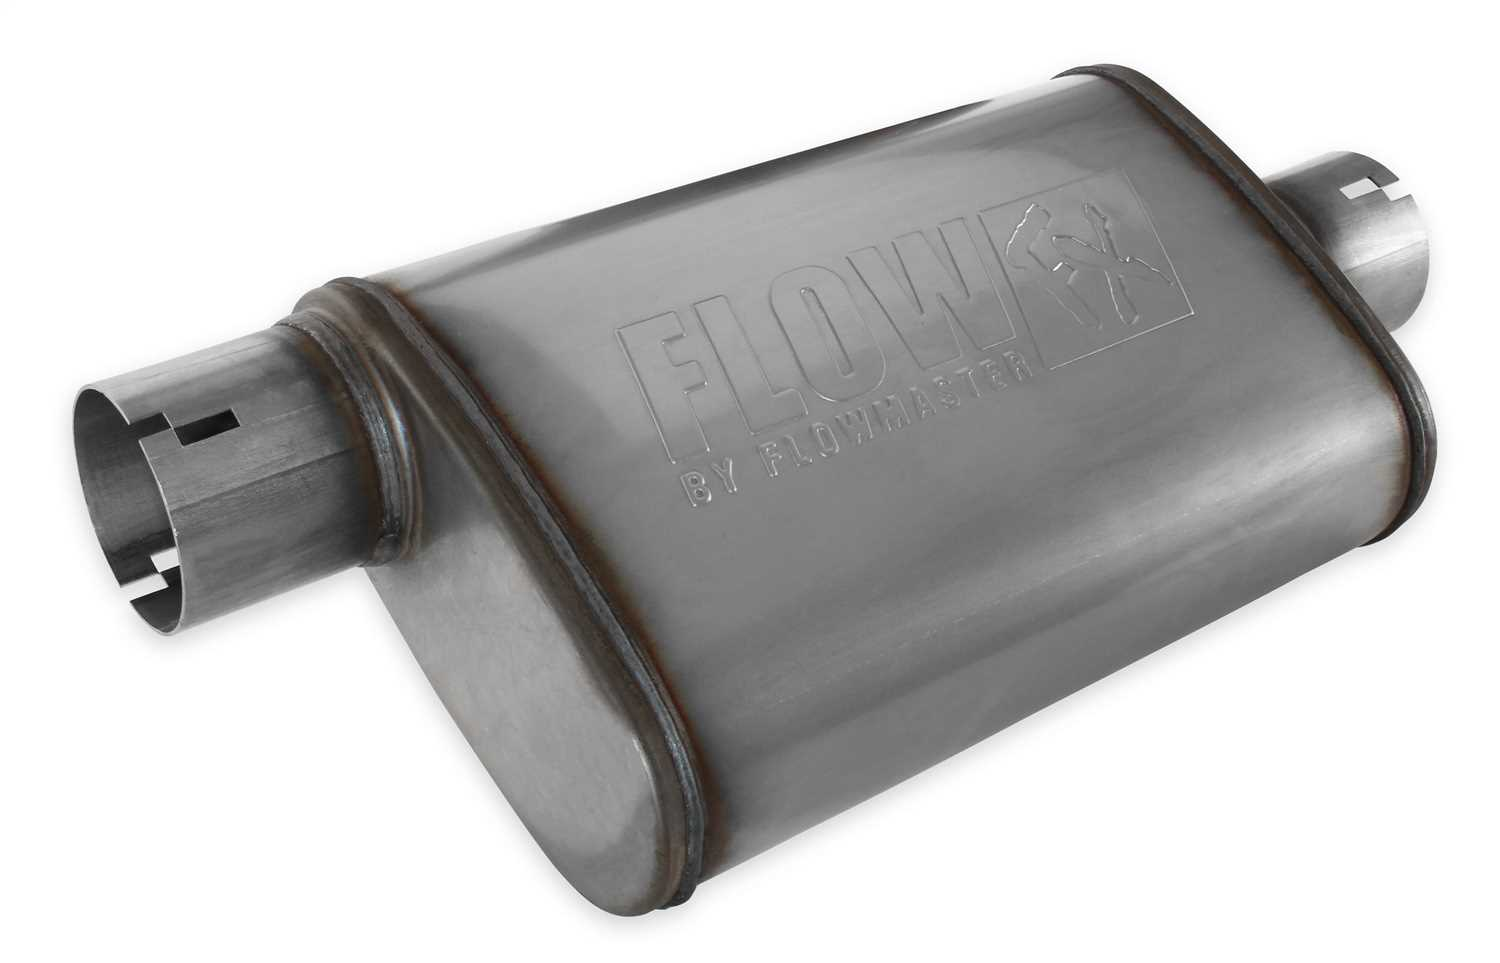 717920 Flowmaster FlowFX Cat-Back Exhaust System